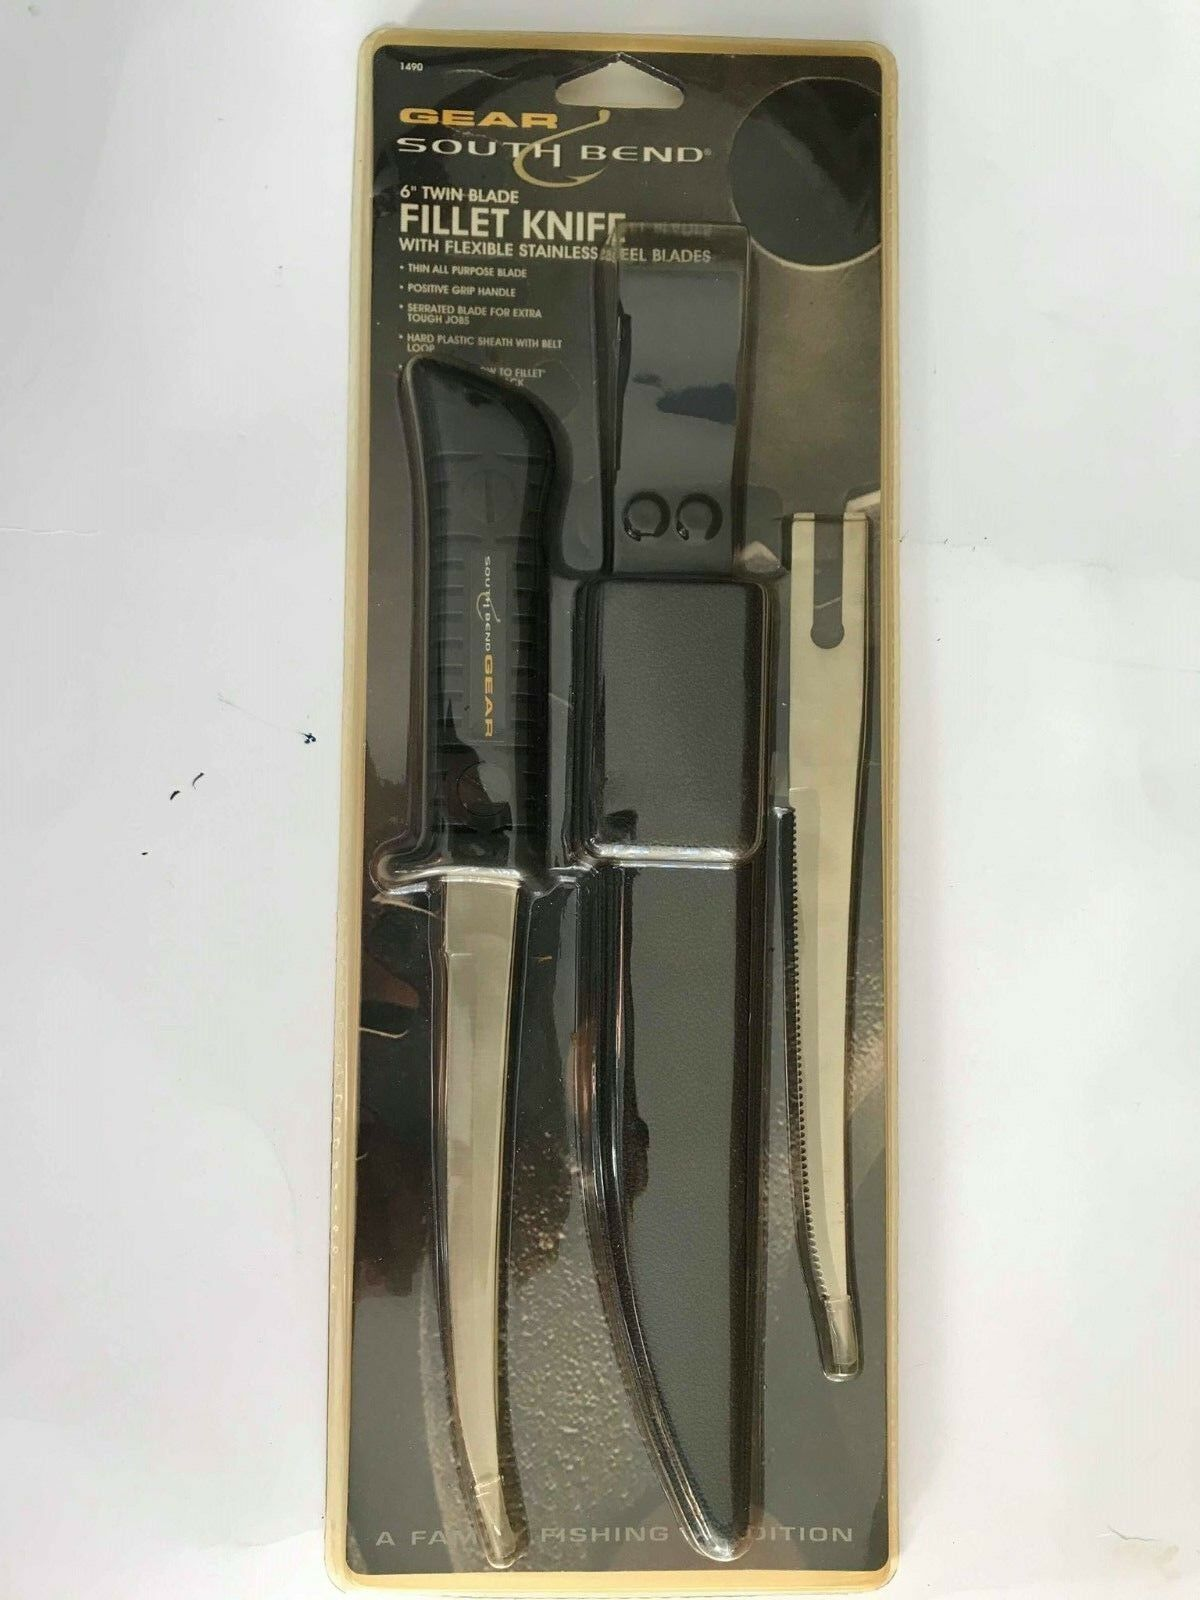 Gear  South Bend 6  Twin Blade Fillet Knife with flexible stainless Steel b 1490  come to choose your own sports style